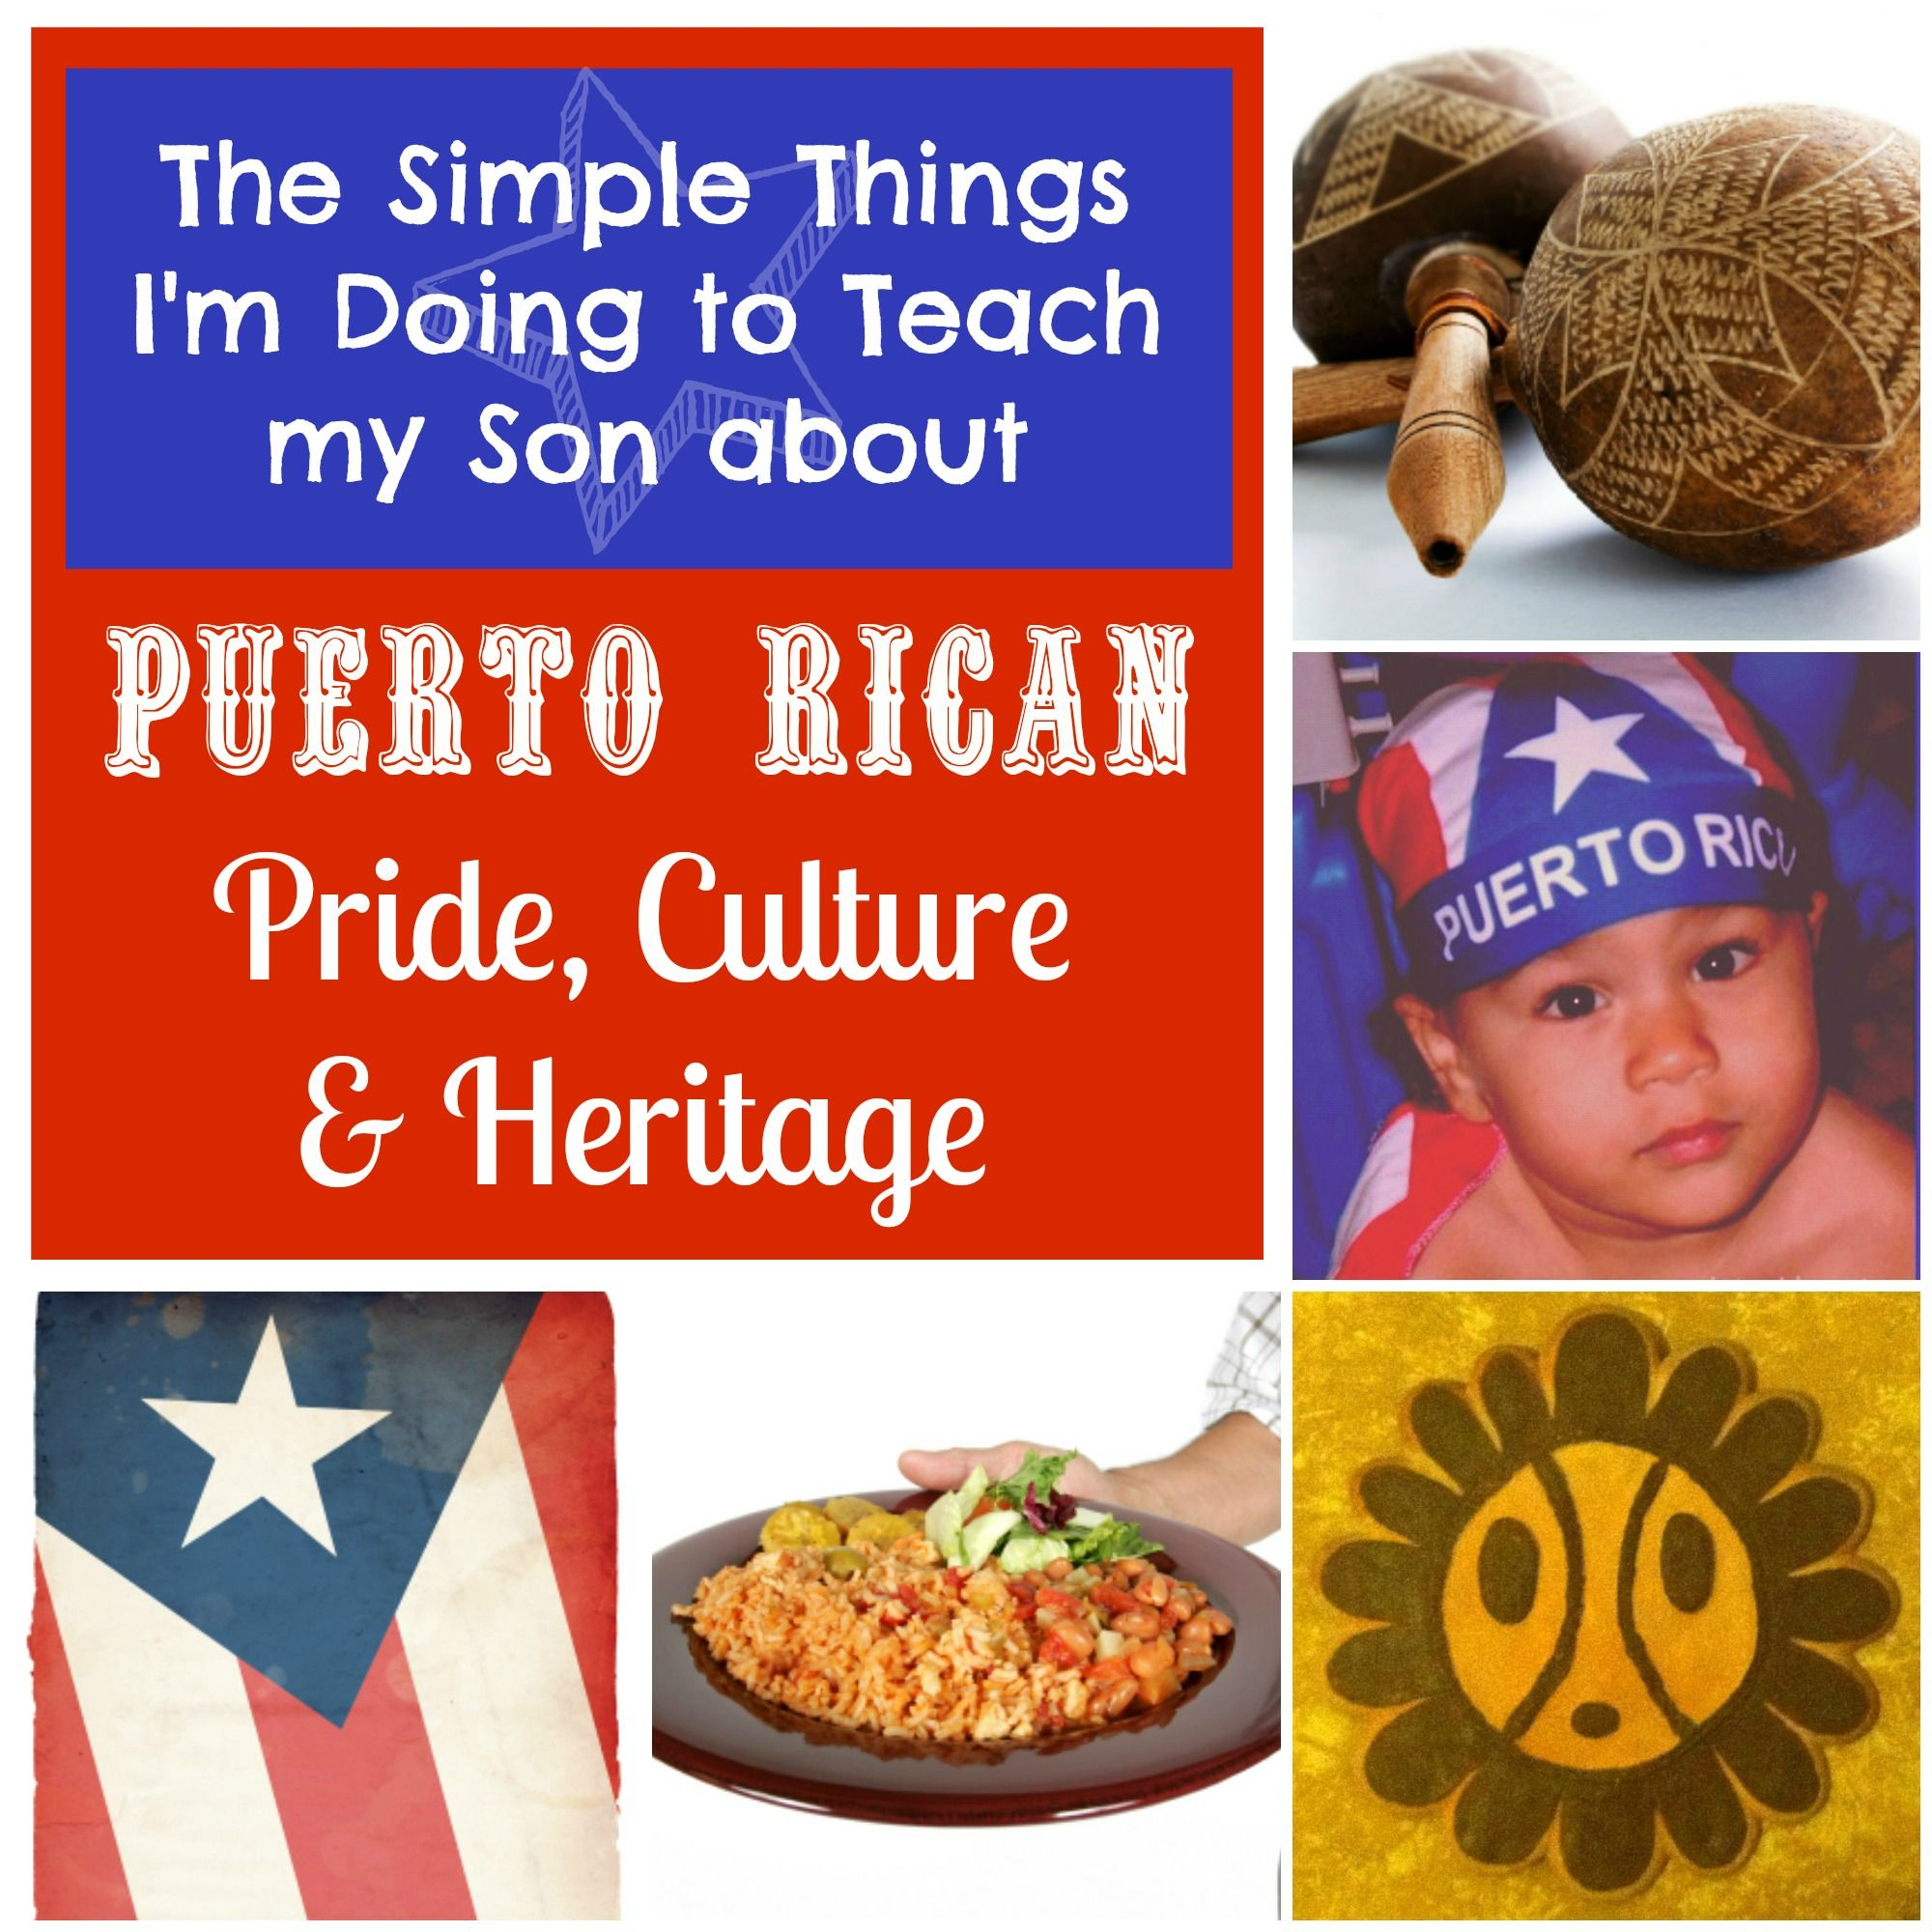 June 9th Is The National Puerto Rican Day Parade In New York City While Going To The Parade May